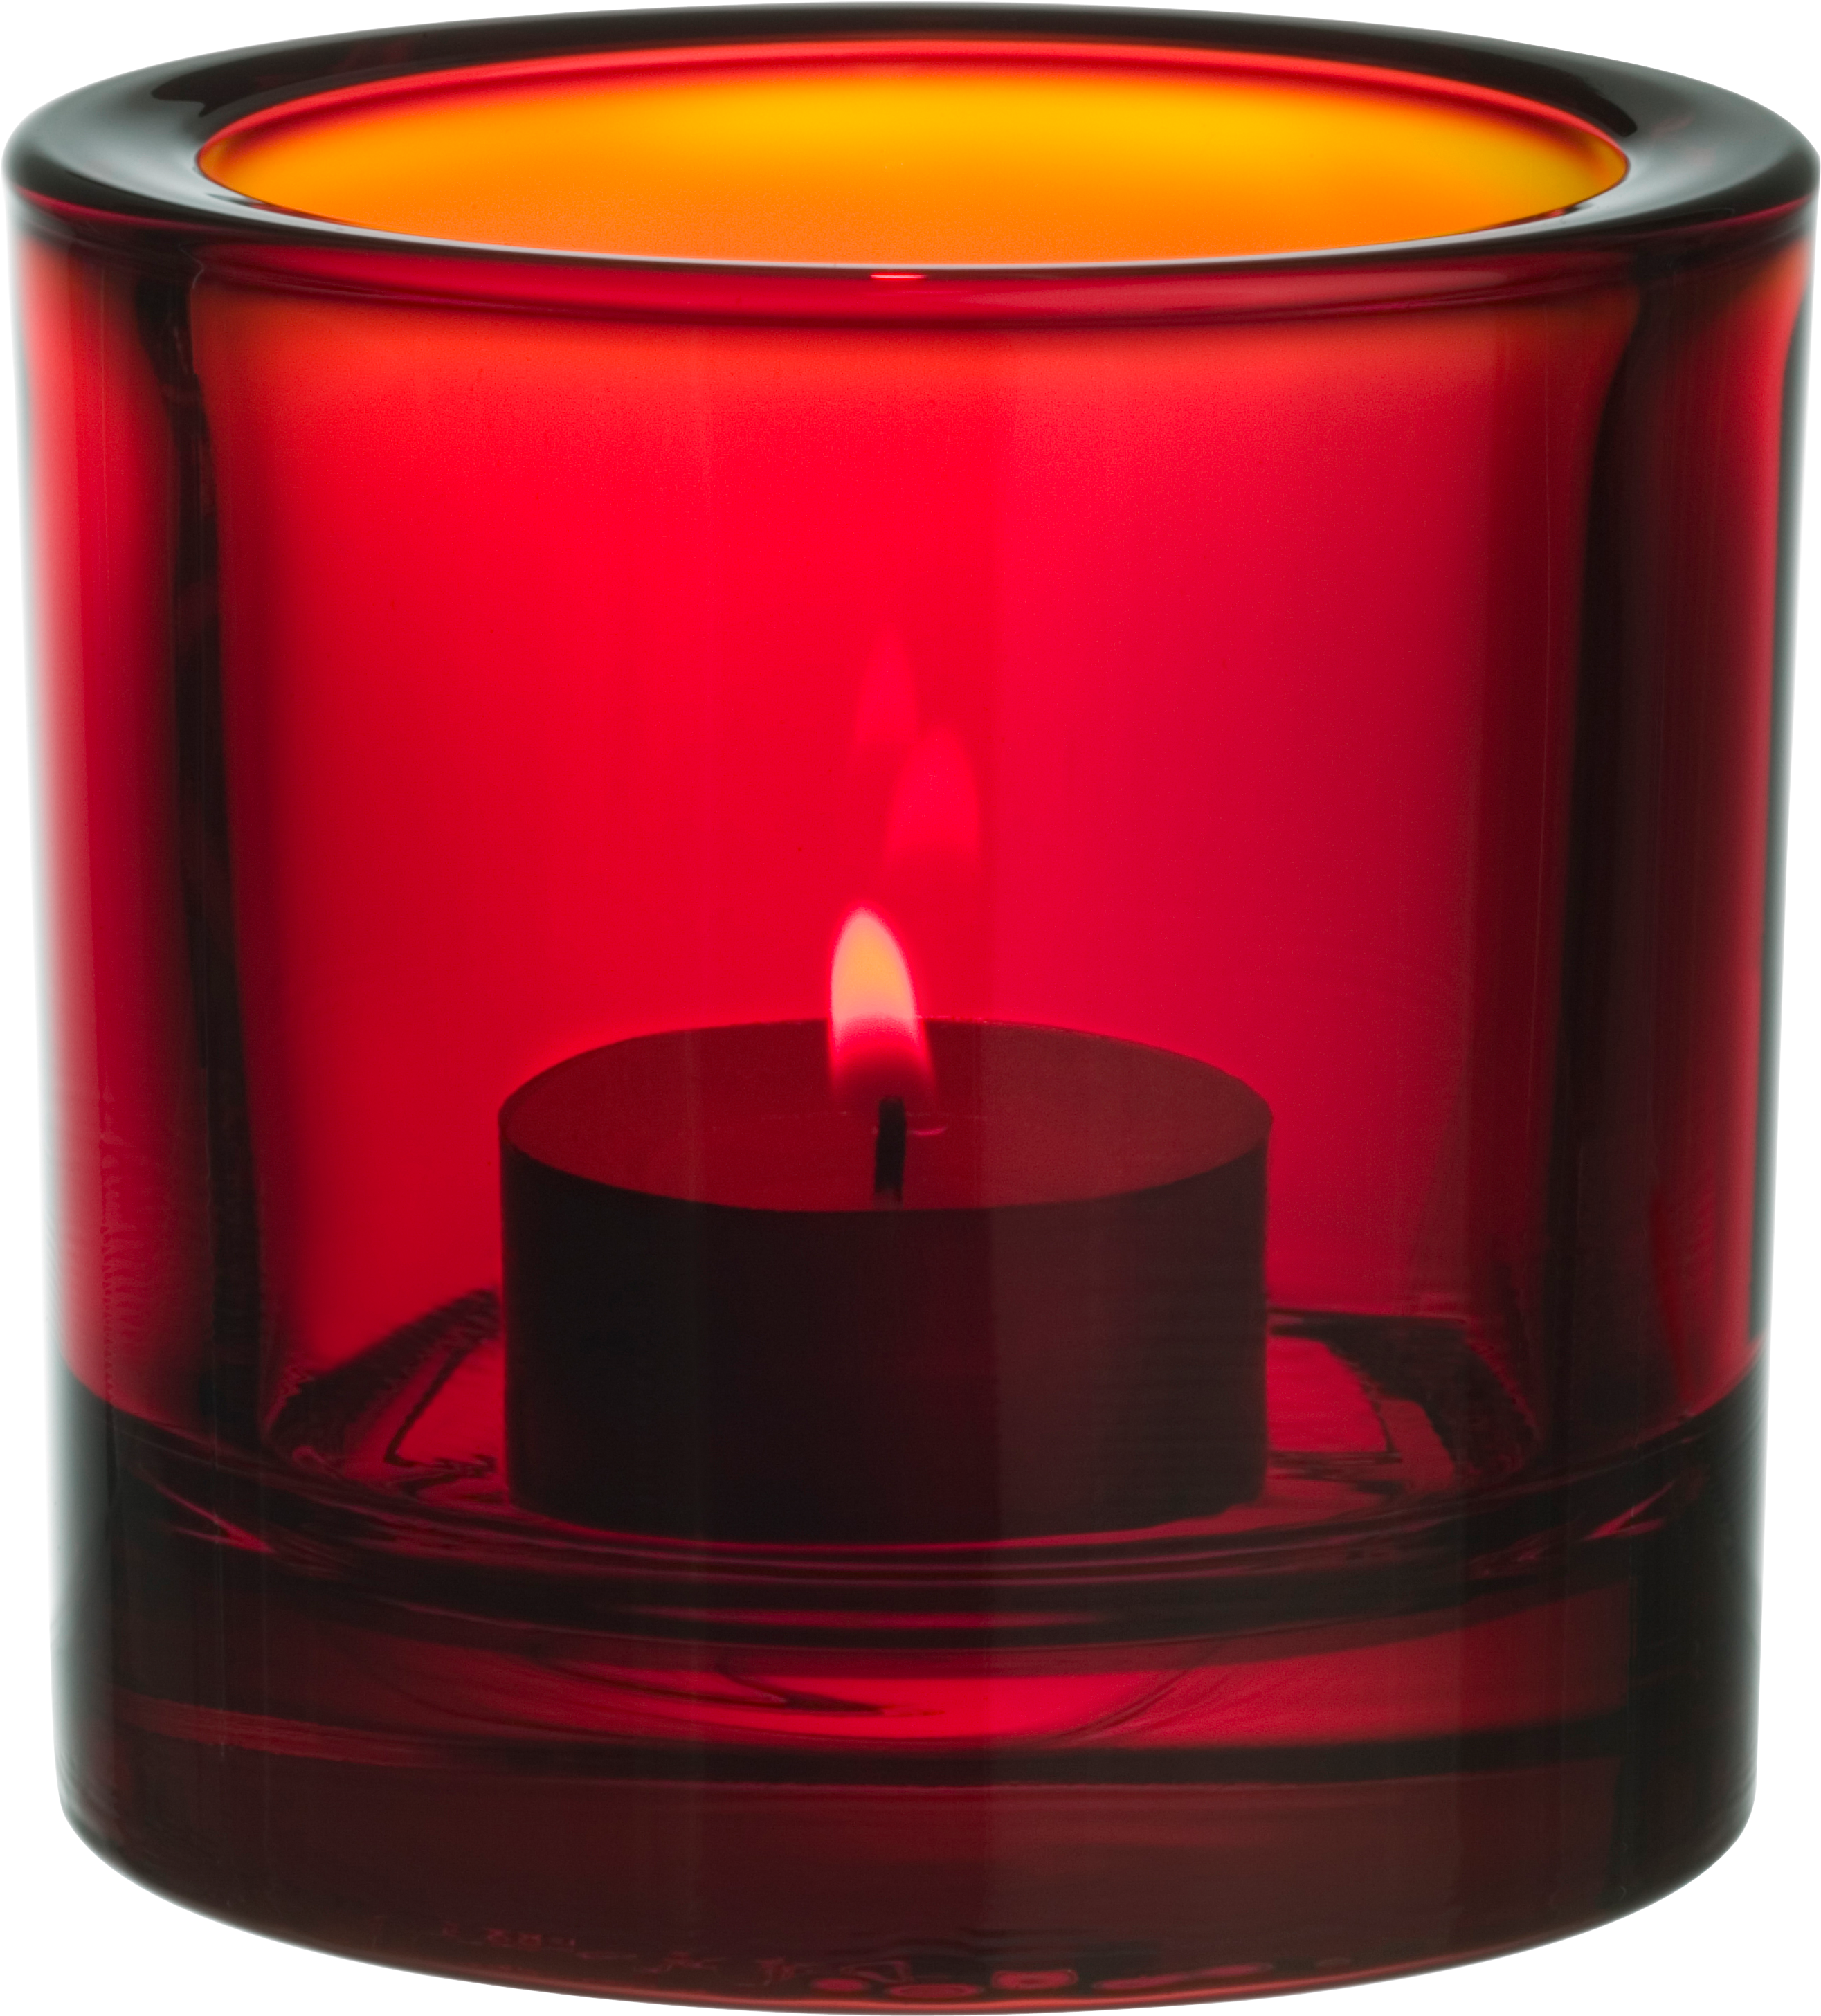 Red Candle PNG Image